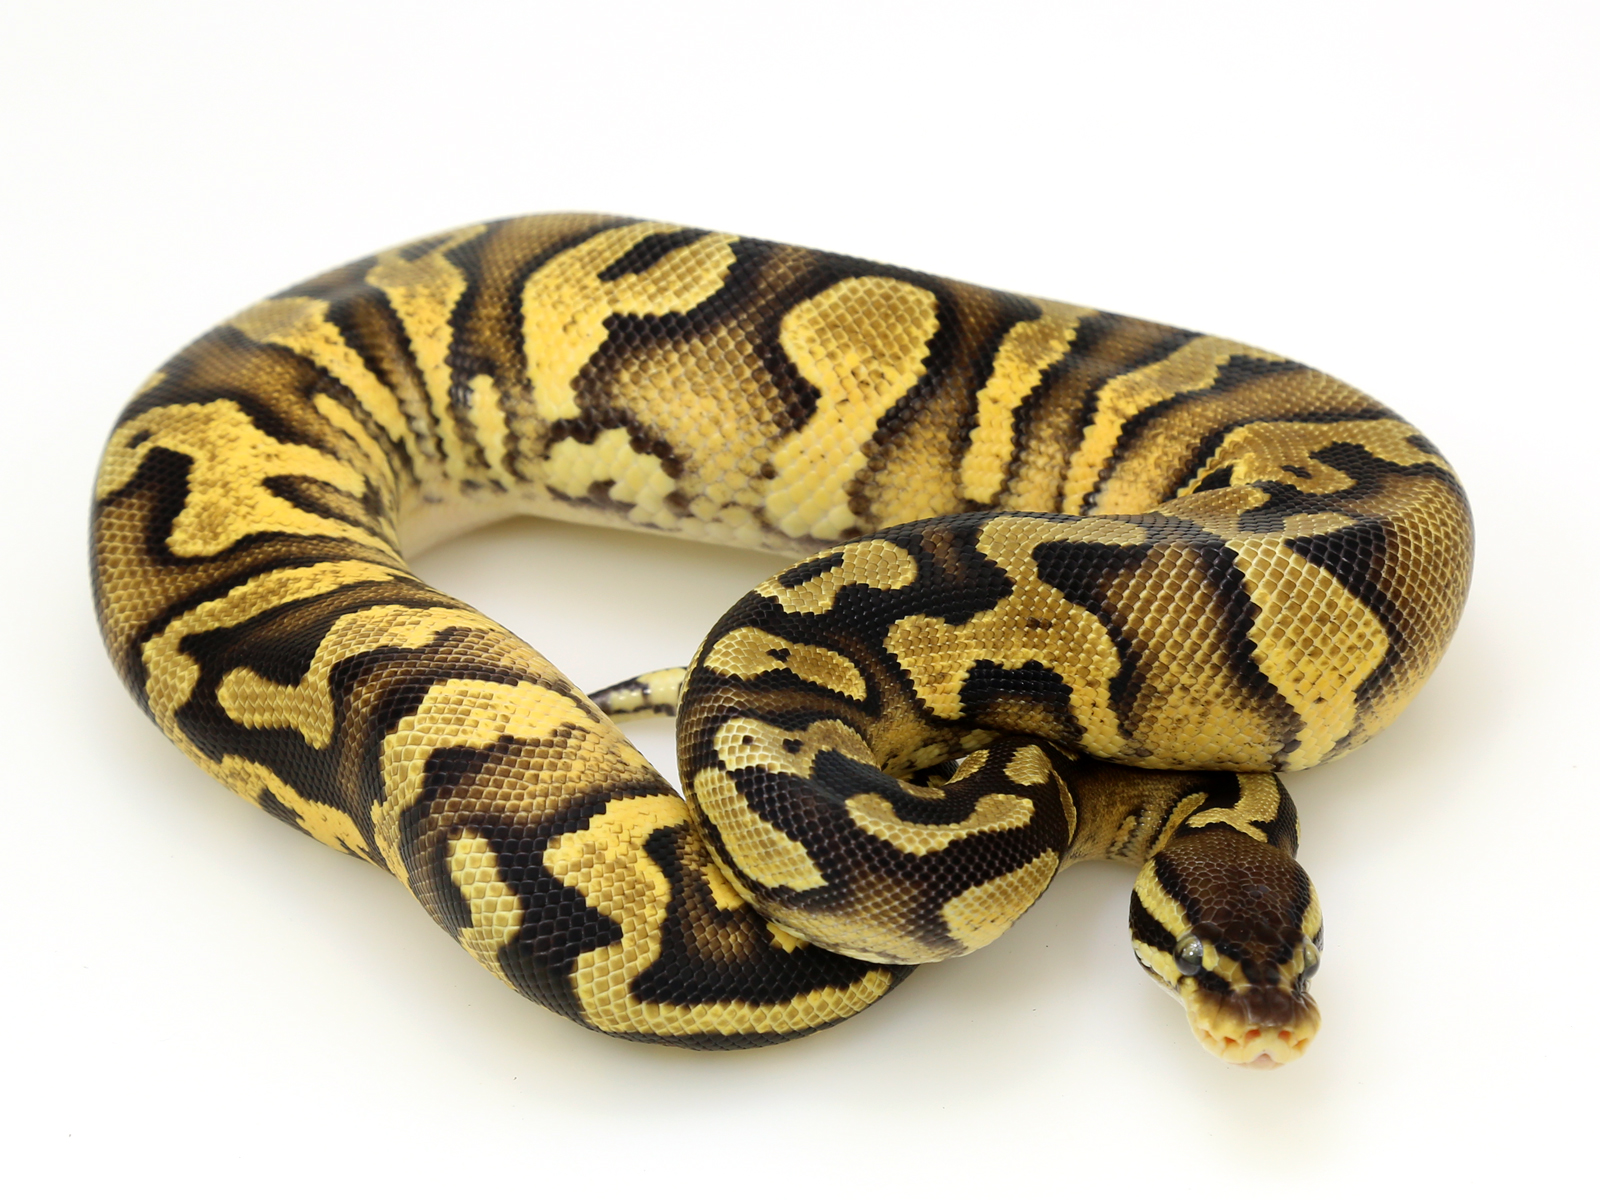 Java Enchi Yellow Belly